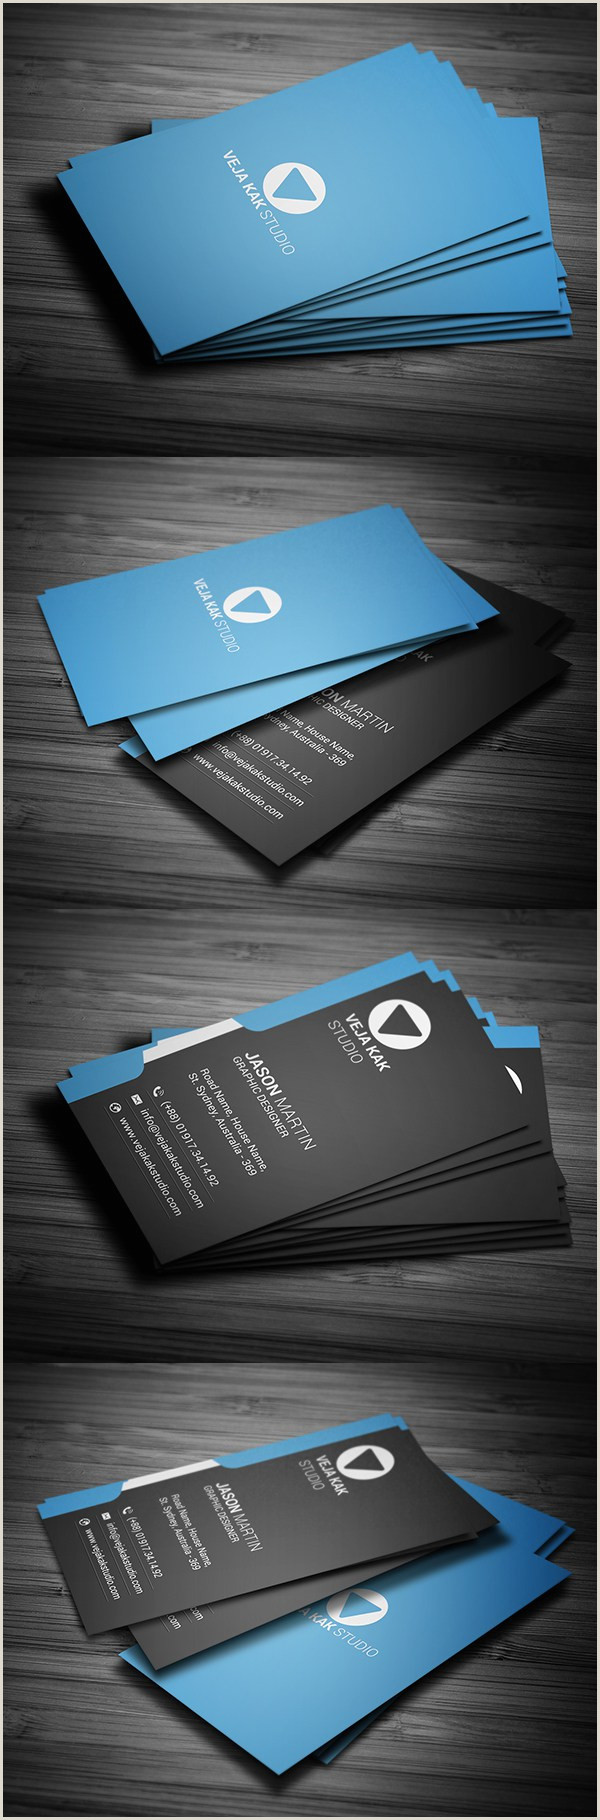 Where To Order Unique Business Cards Modern Vertical Business Card